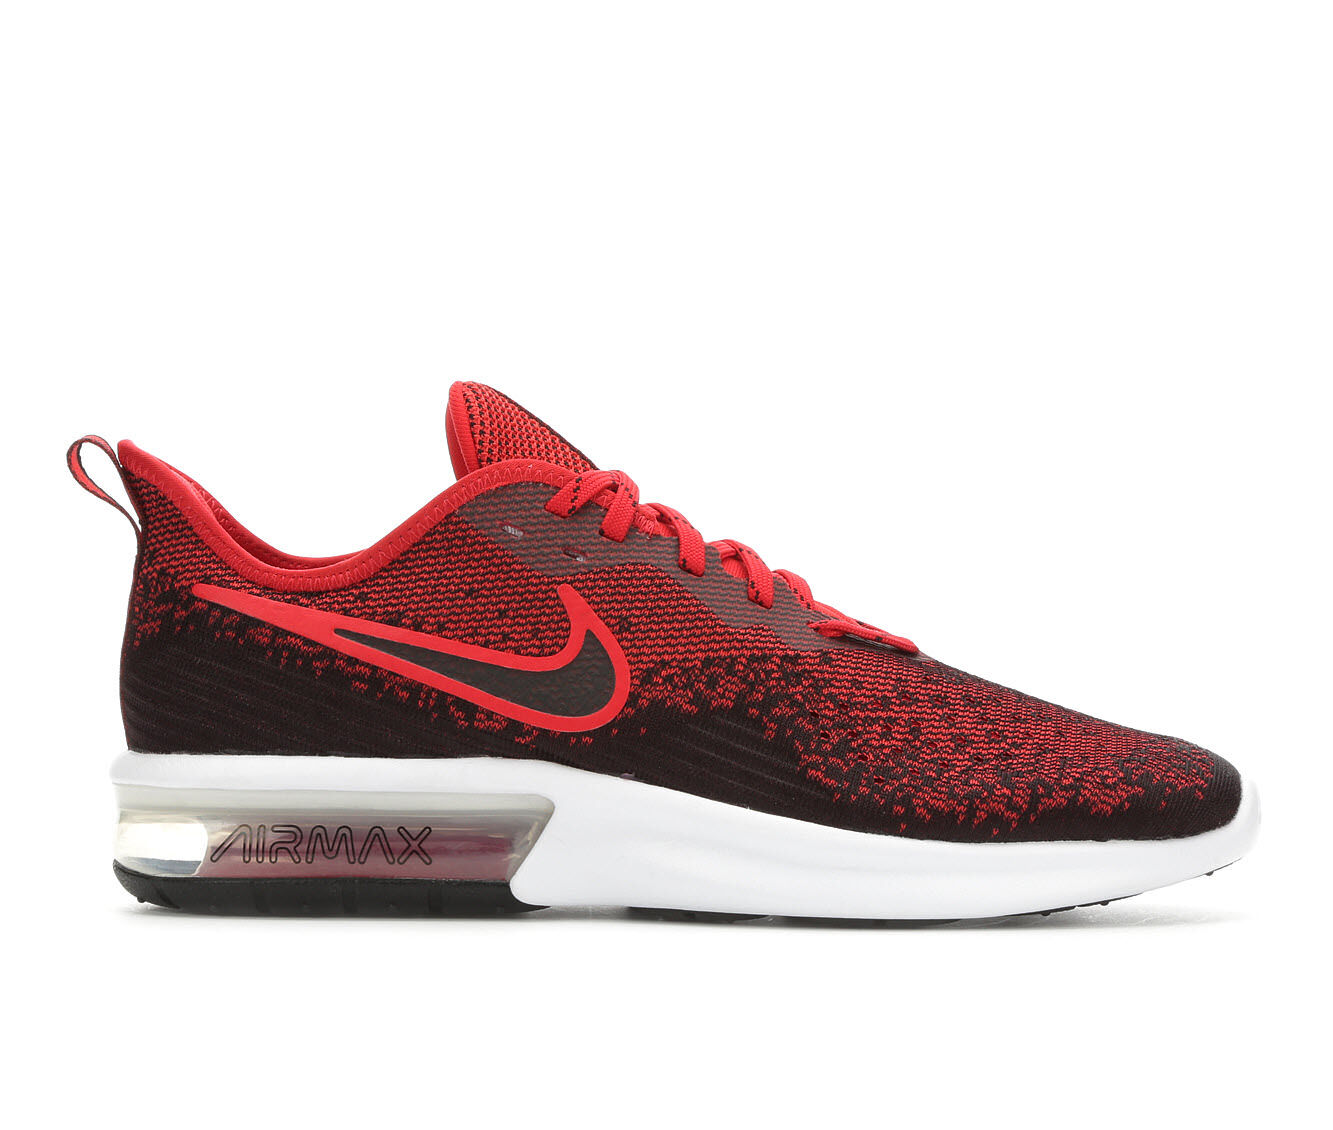 Economic Popular Men's Nike Air Max Sequent 4 Running Shoes Blk/Red 006